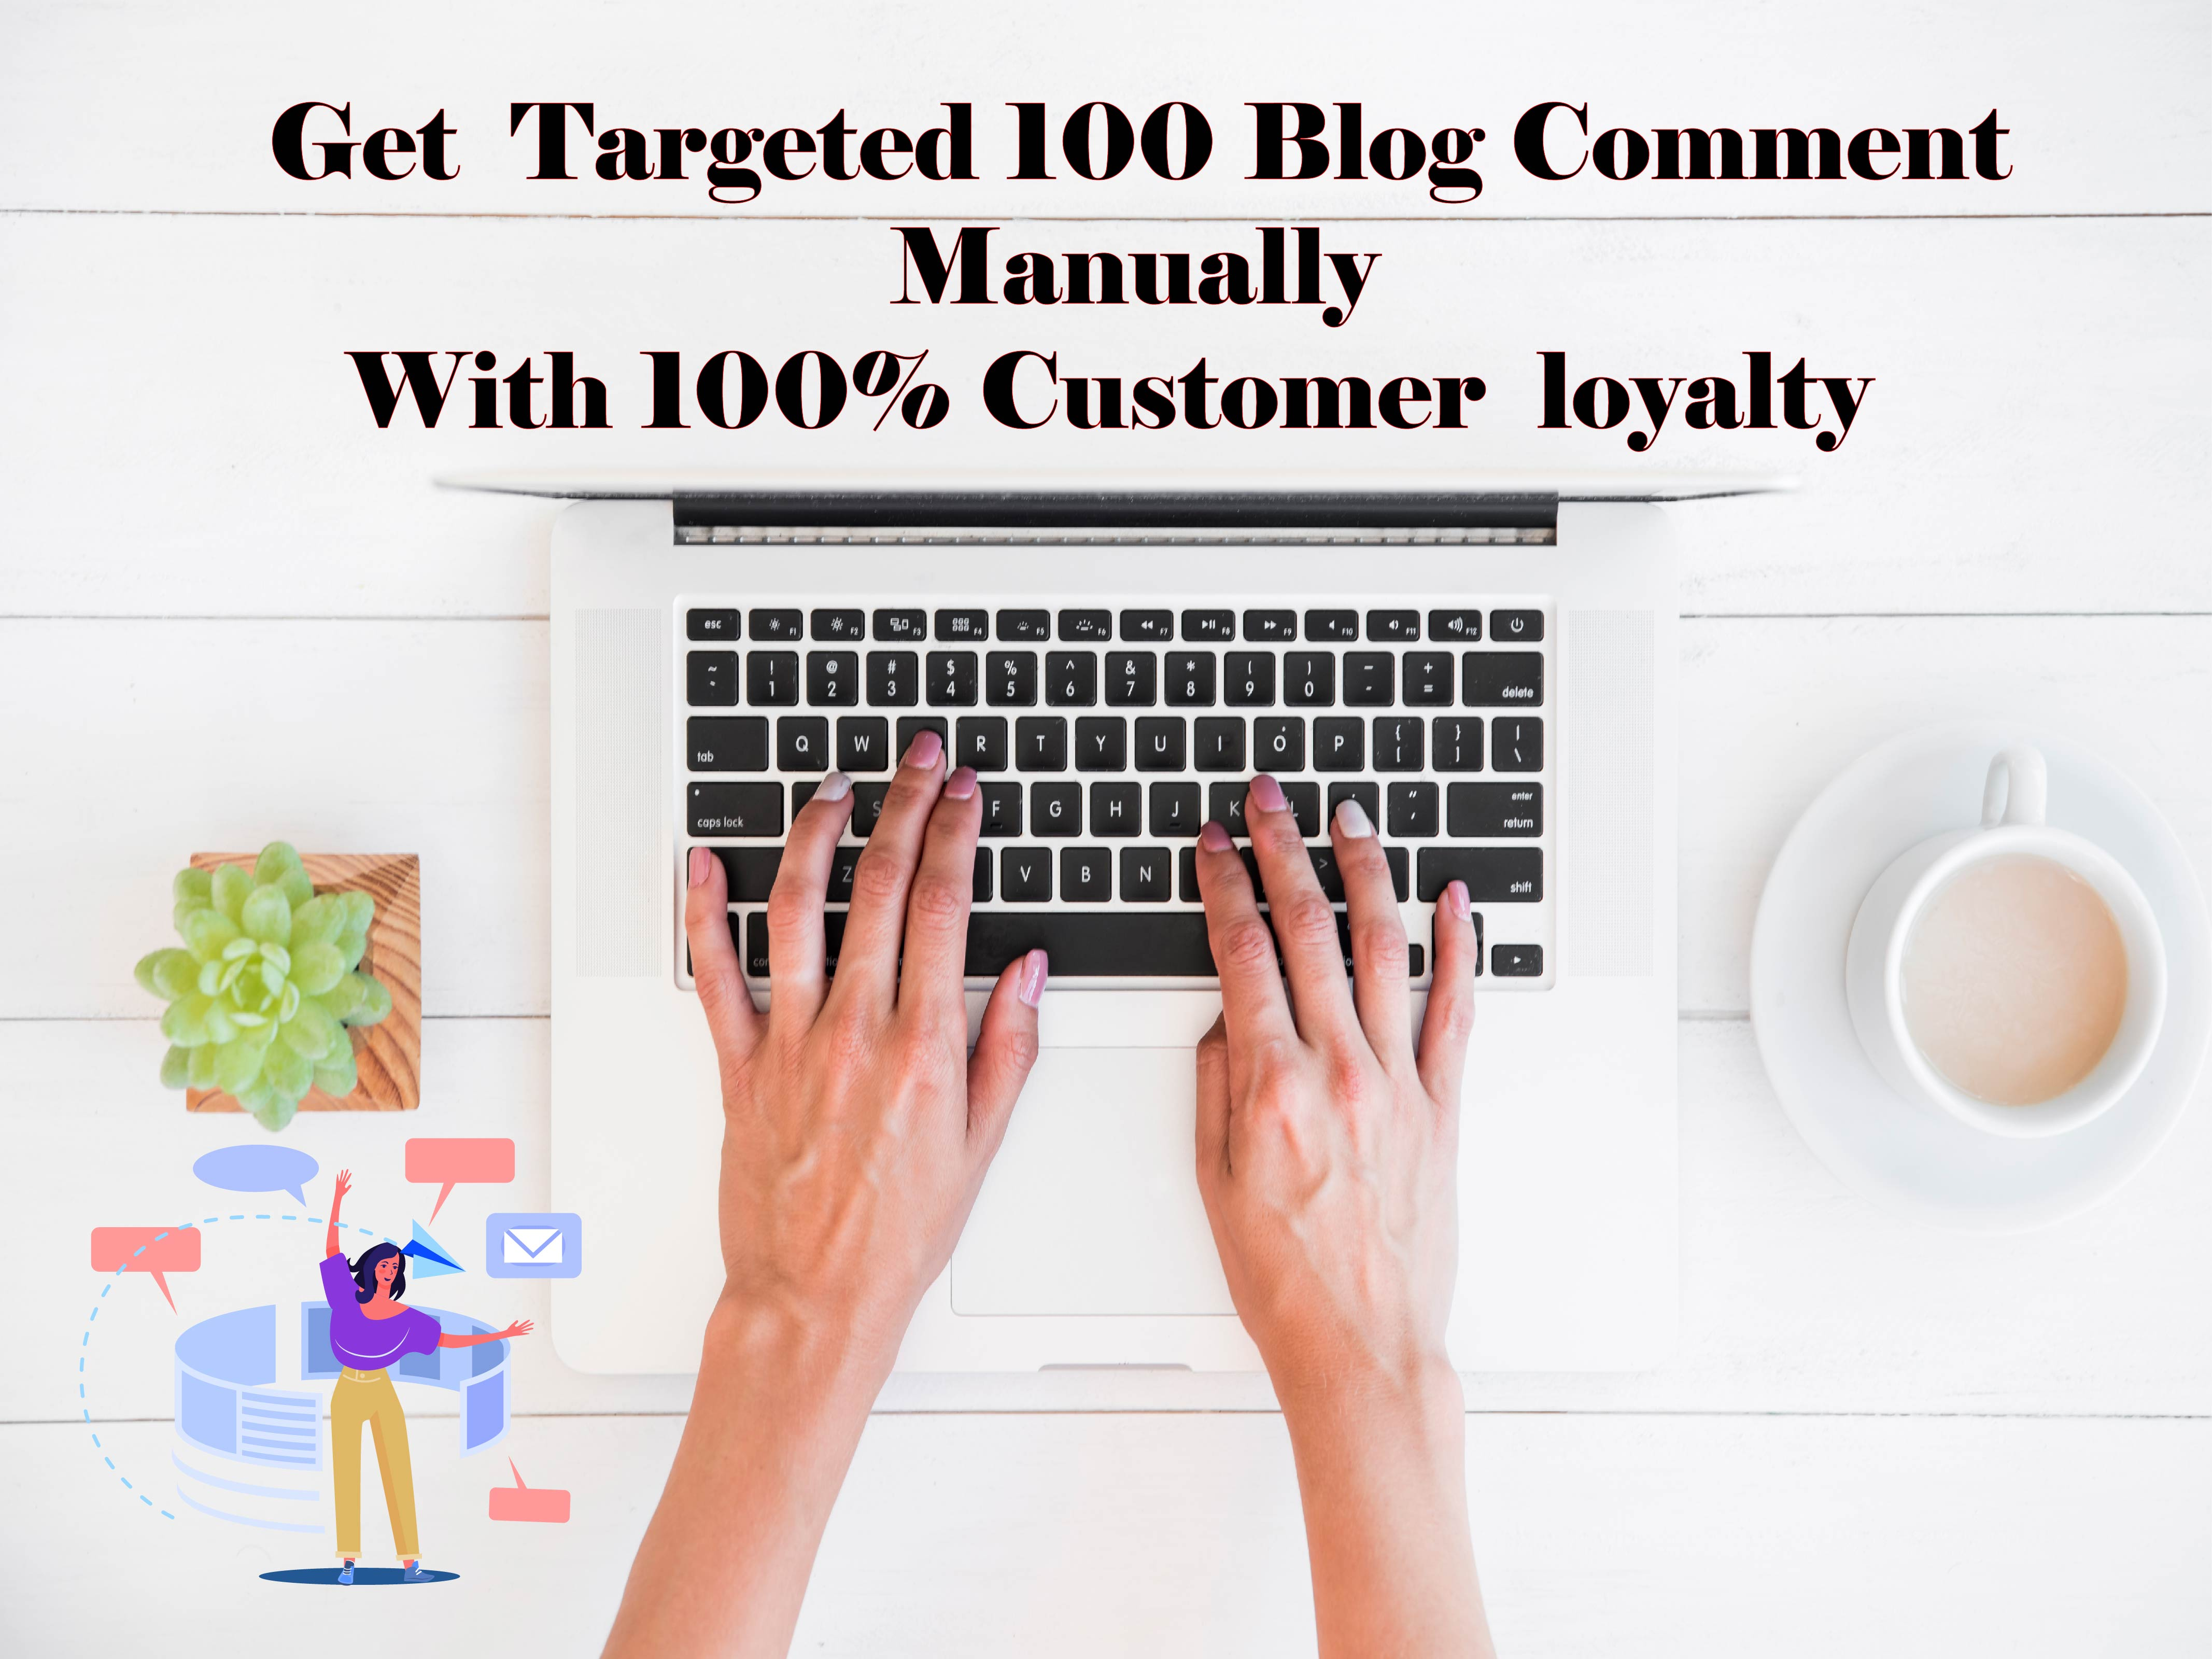 Get targeted 100 Blog Comment Manually Done with 100 customer loyalty